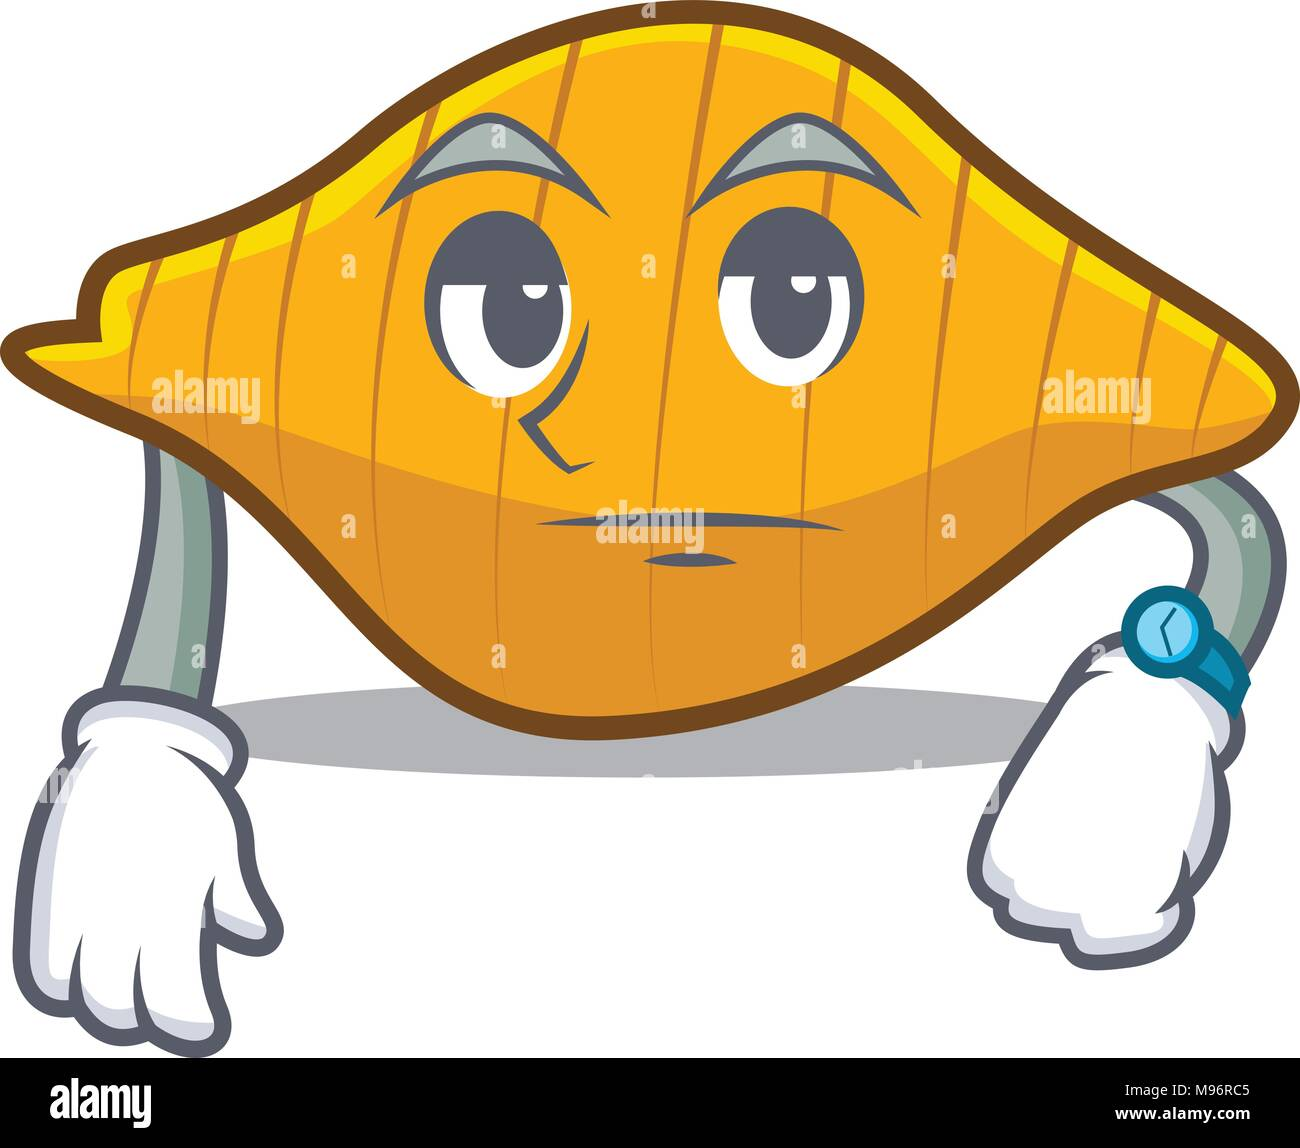 Waiting conchiglie pasta mascot cartoon Stock Vector